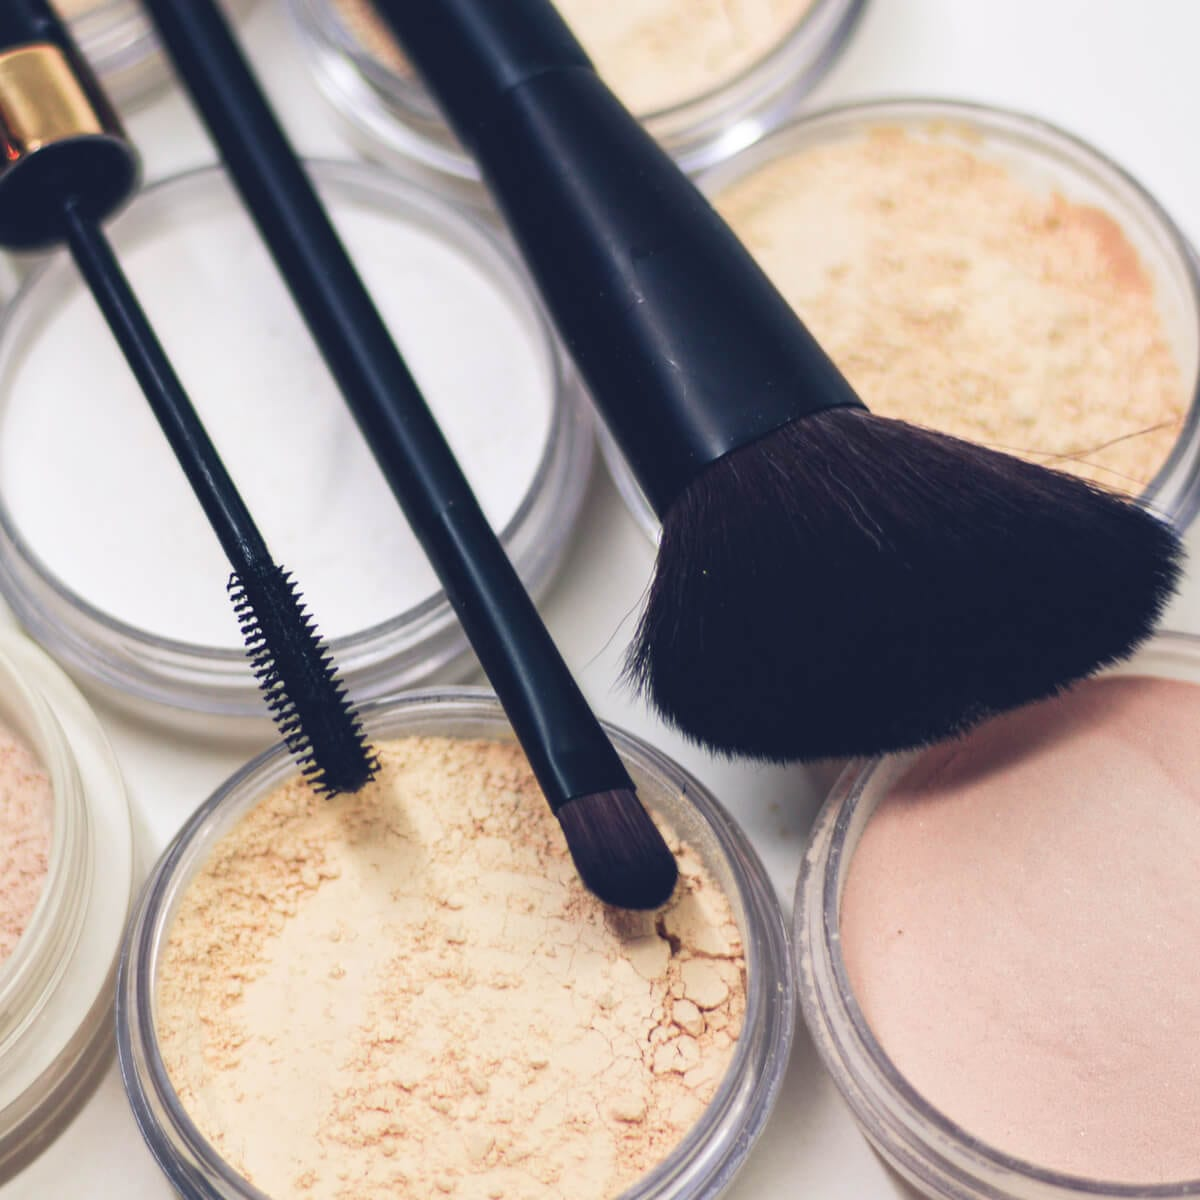 Parabens 101: The Dirt on These Controversial Chemicals